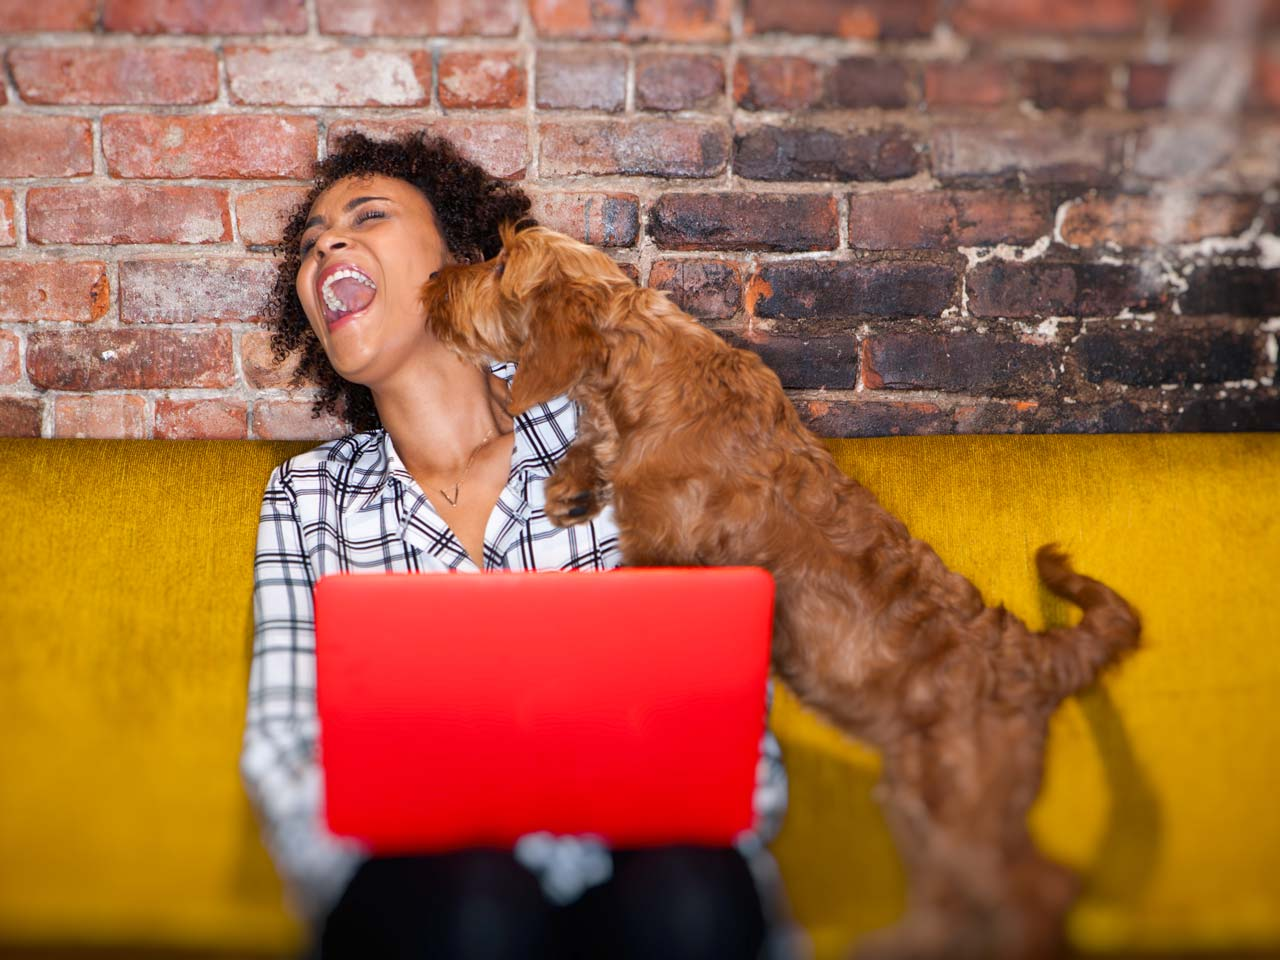 Woman on her laptop while pet dog licks her face